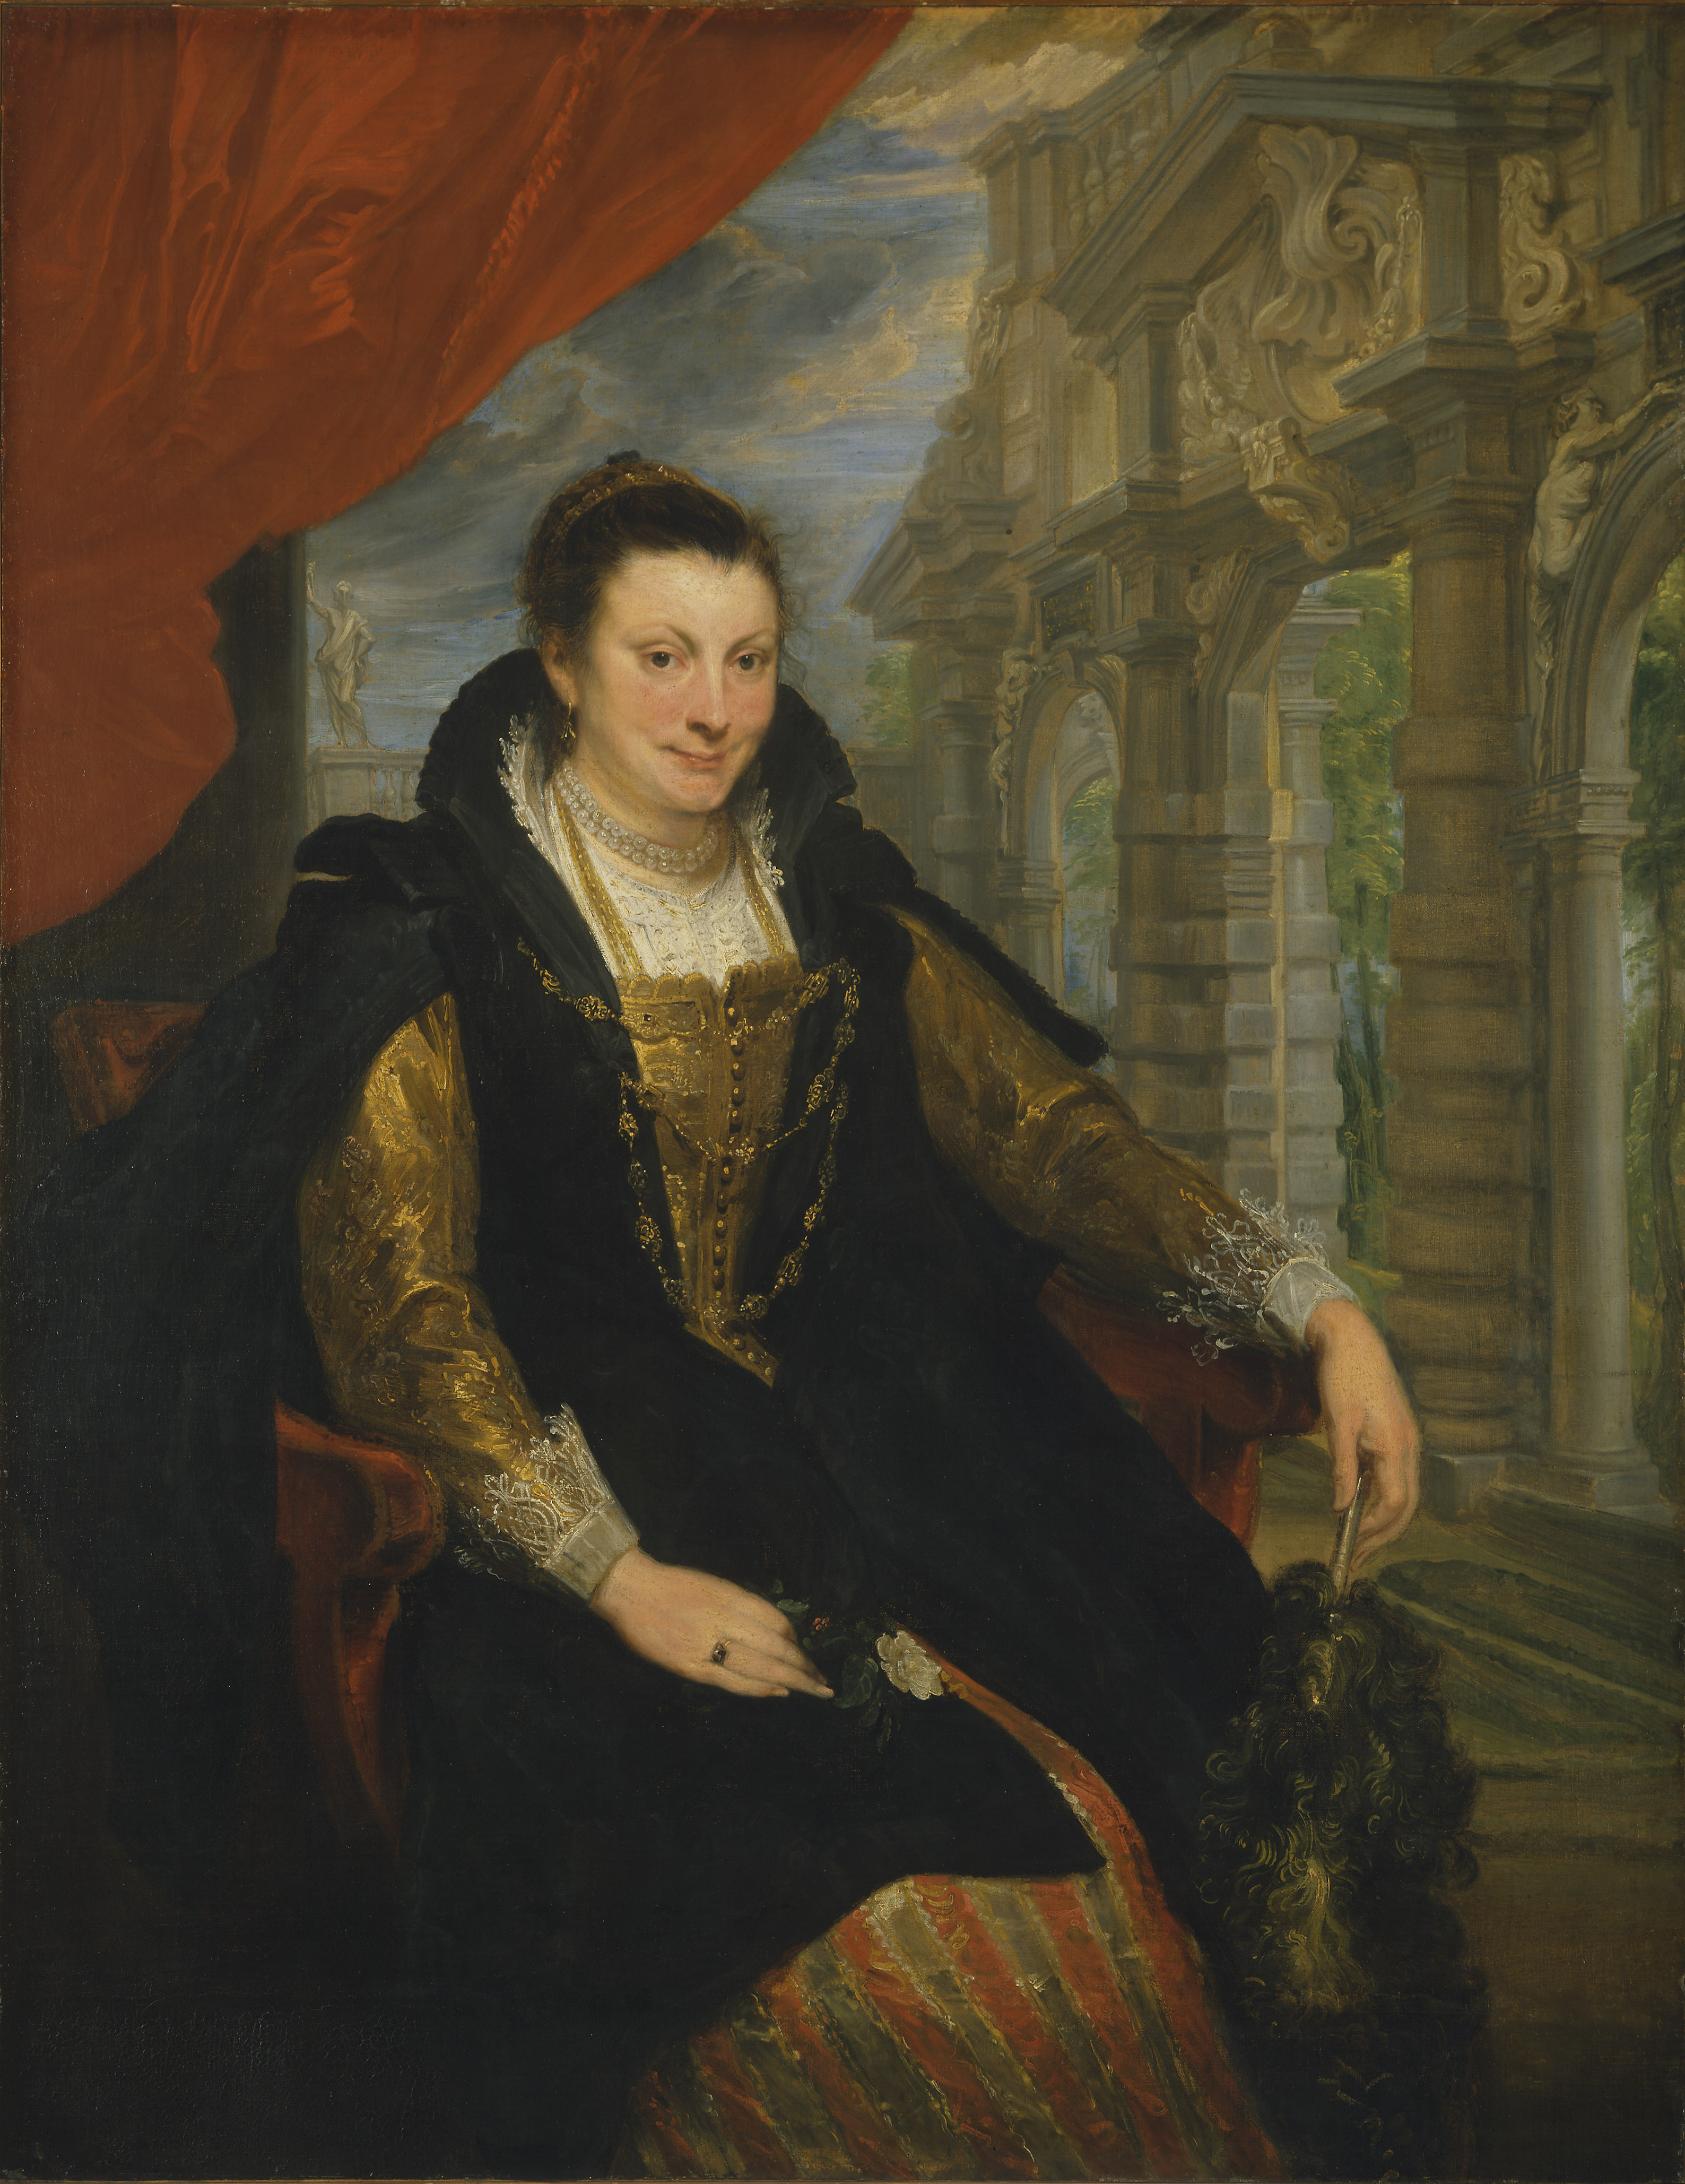 Portrait of Isabella Brant by Anthony Van Dyck (1621). Cambridge academic Dr John Harvey says the image suggests an adulterous romance between Van Dyck and Brant, the wife of Van Dyck's mentor Peter Paul Rubens. (National Gallery of Art, Washington/ PA)